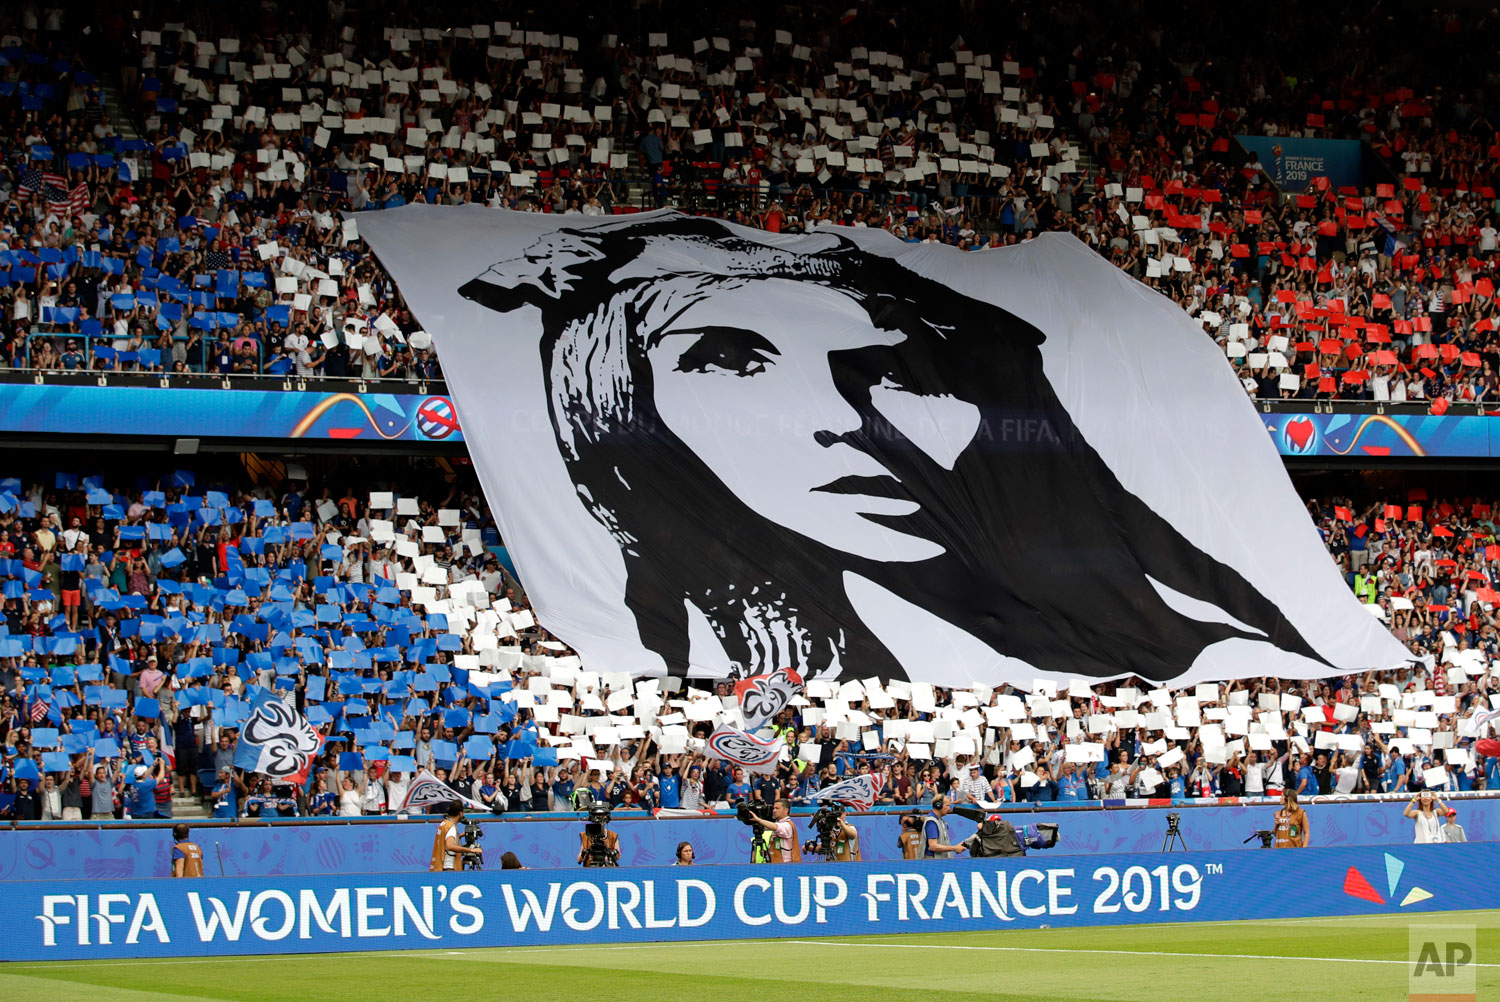 French fans hold a banner that shows Marianne, personification of the French Republic, prior the Women's World Cup quarterfinal soccer match between France and the United States at the Parc des Princes, in Paris, Friday, June 28, 2019.(AP Photo/Alessandra Tarantino)